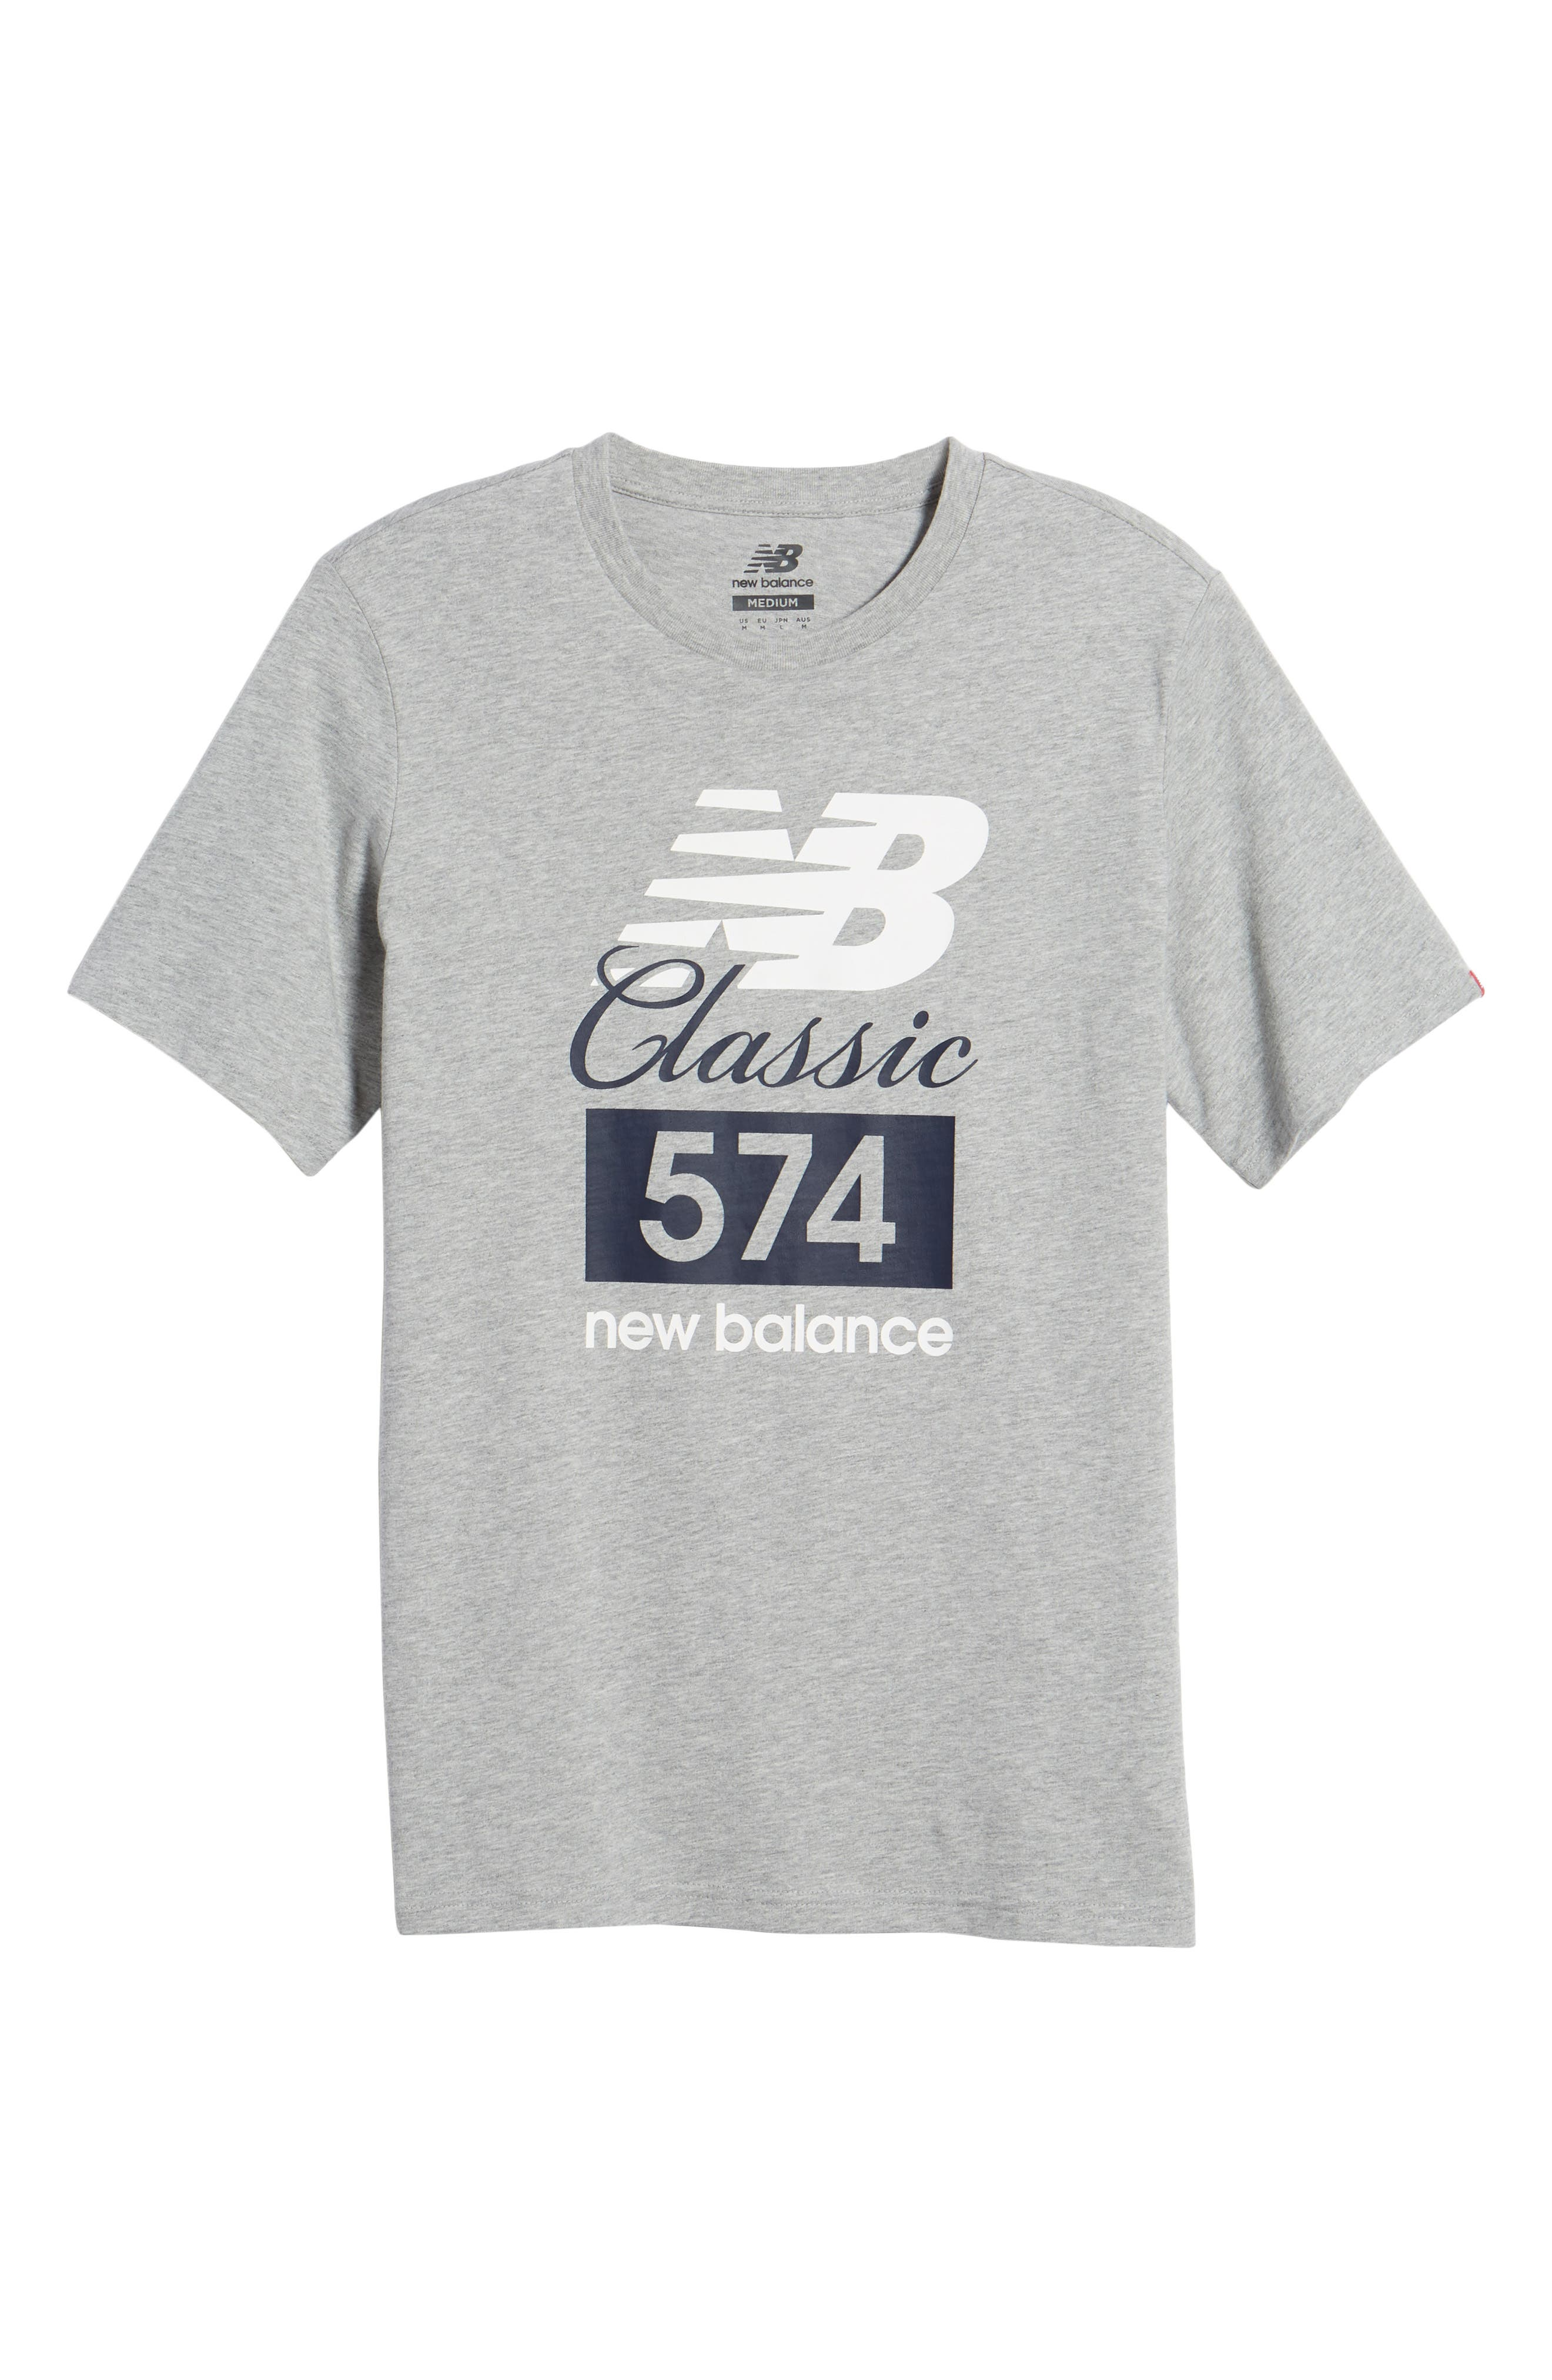 Athletics Classic 574 Crewneck T-Shirt,                             Alternate thumbnail 6, color,                             053